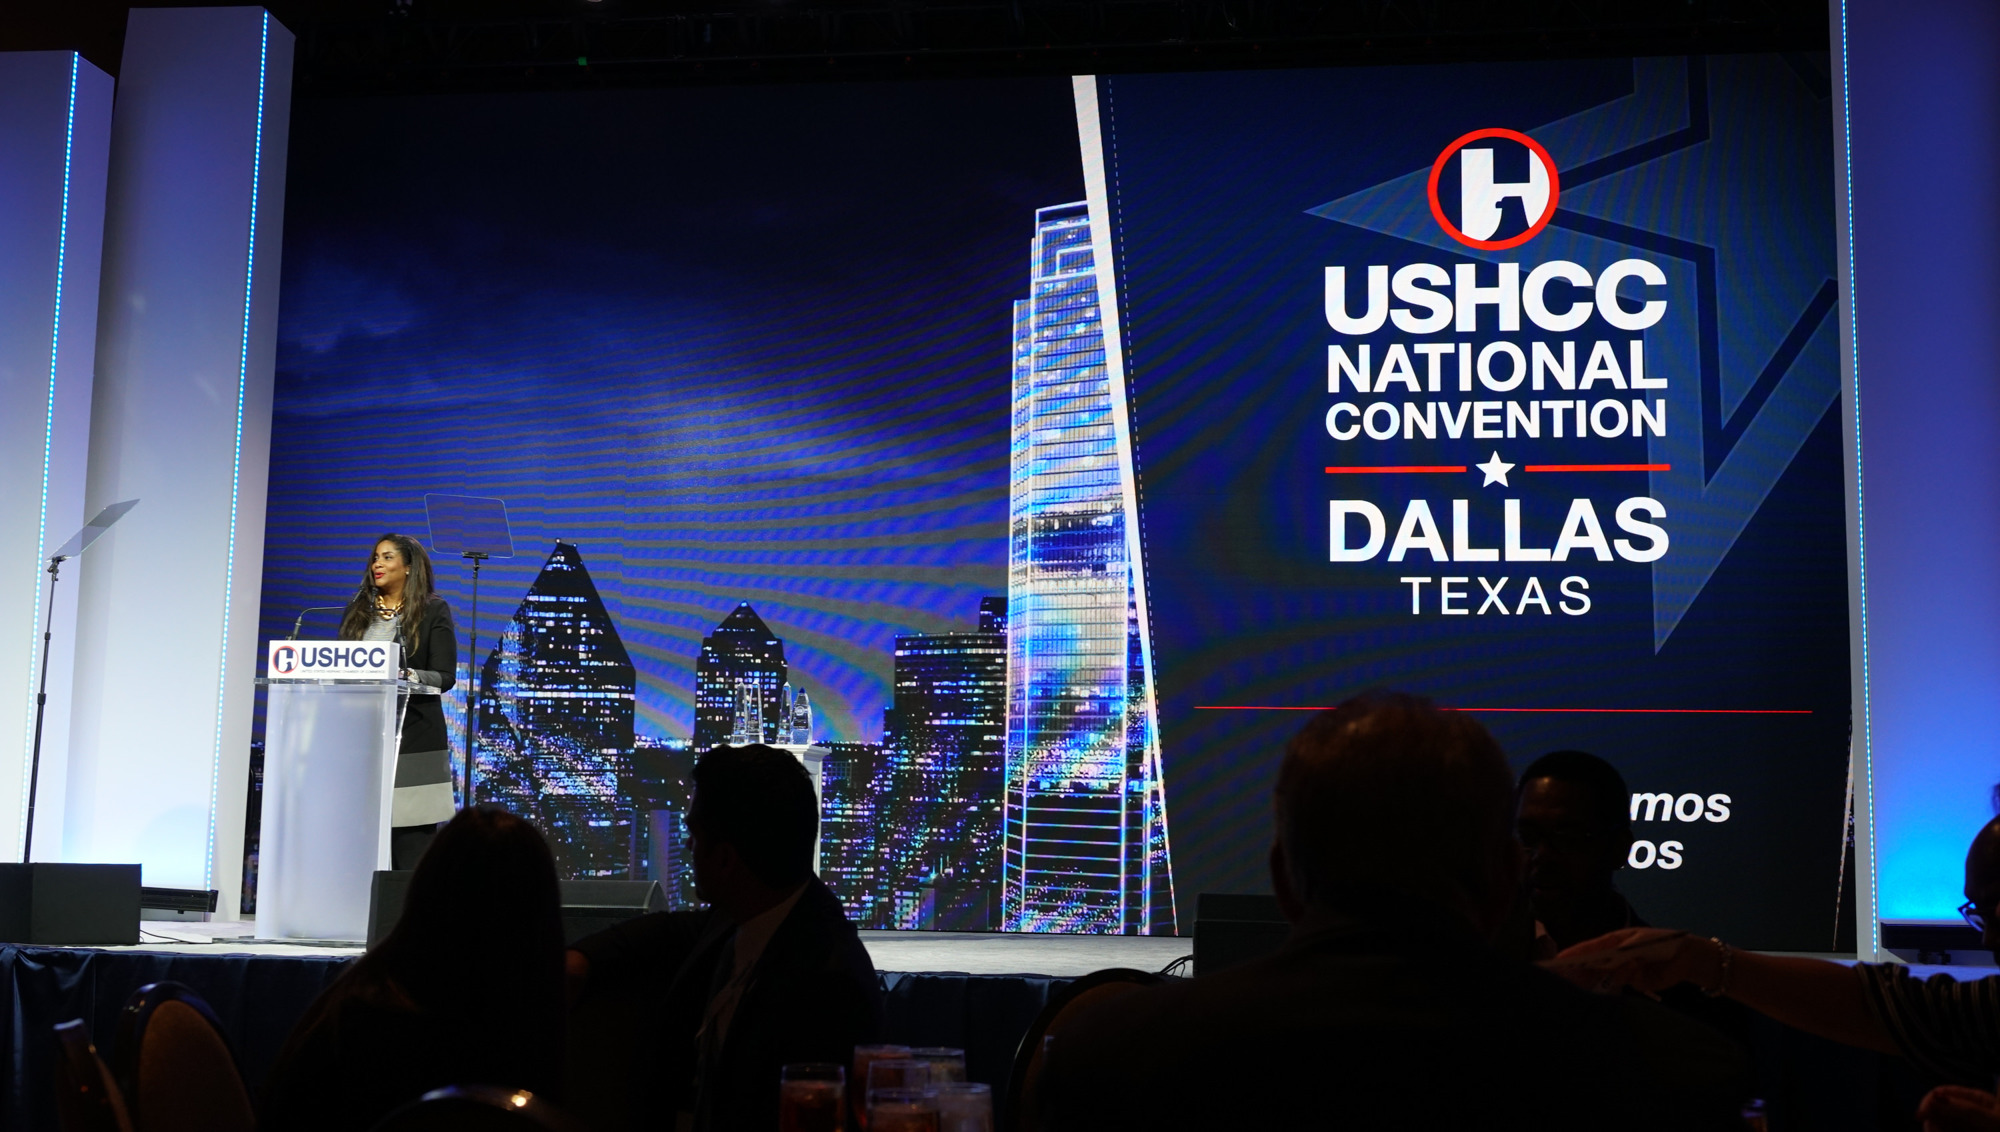 Event Photography (USHCC)